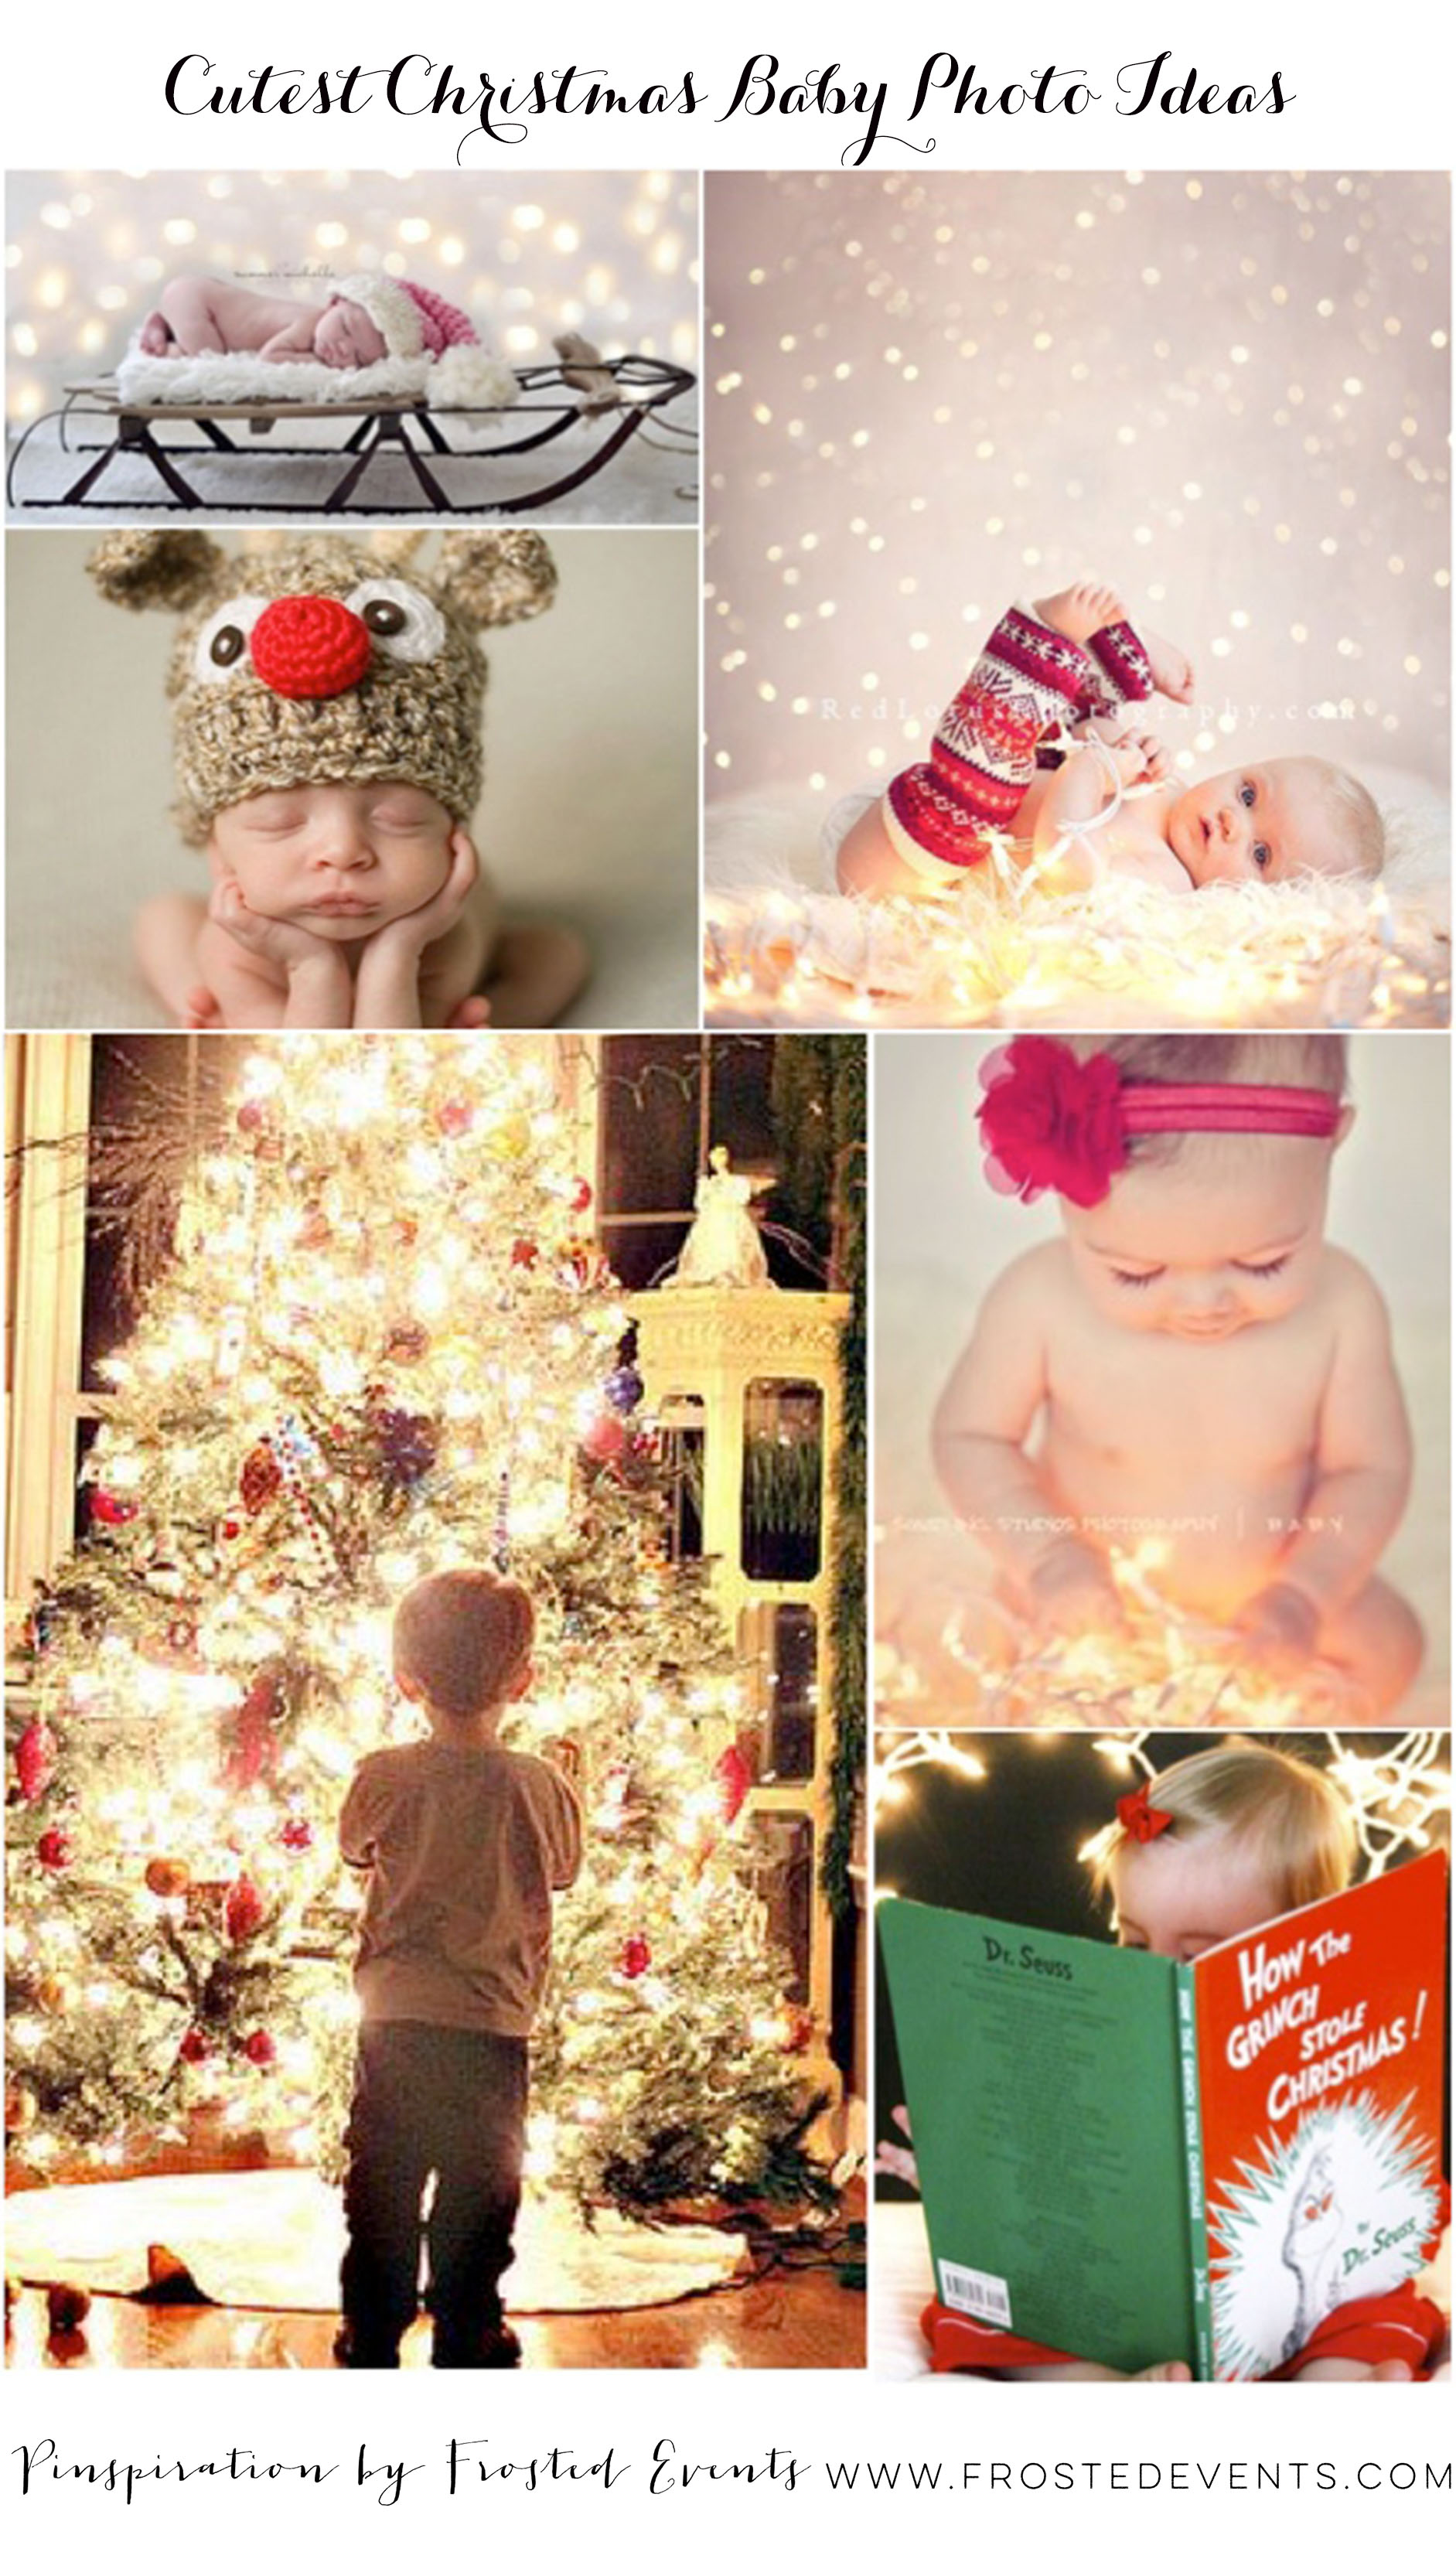 Cutest-Christmas-Baby-Photo-Ideas-www.frostedevents.com